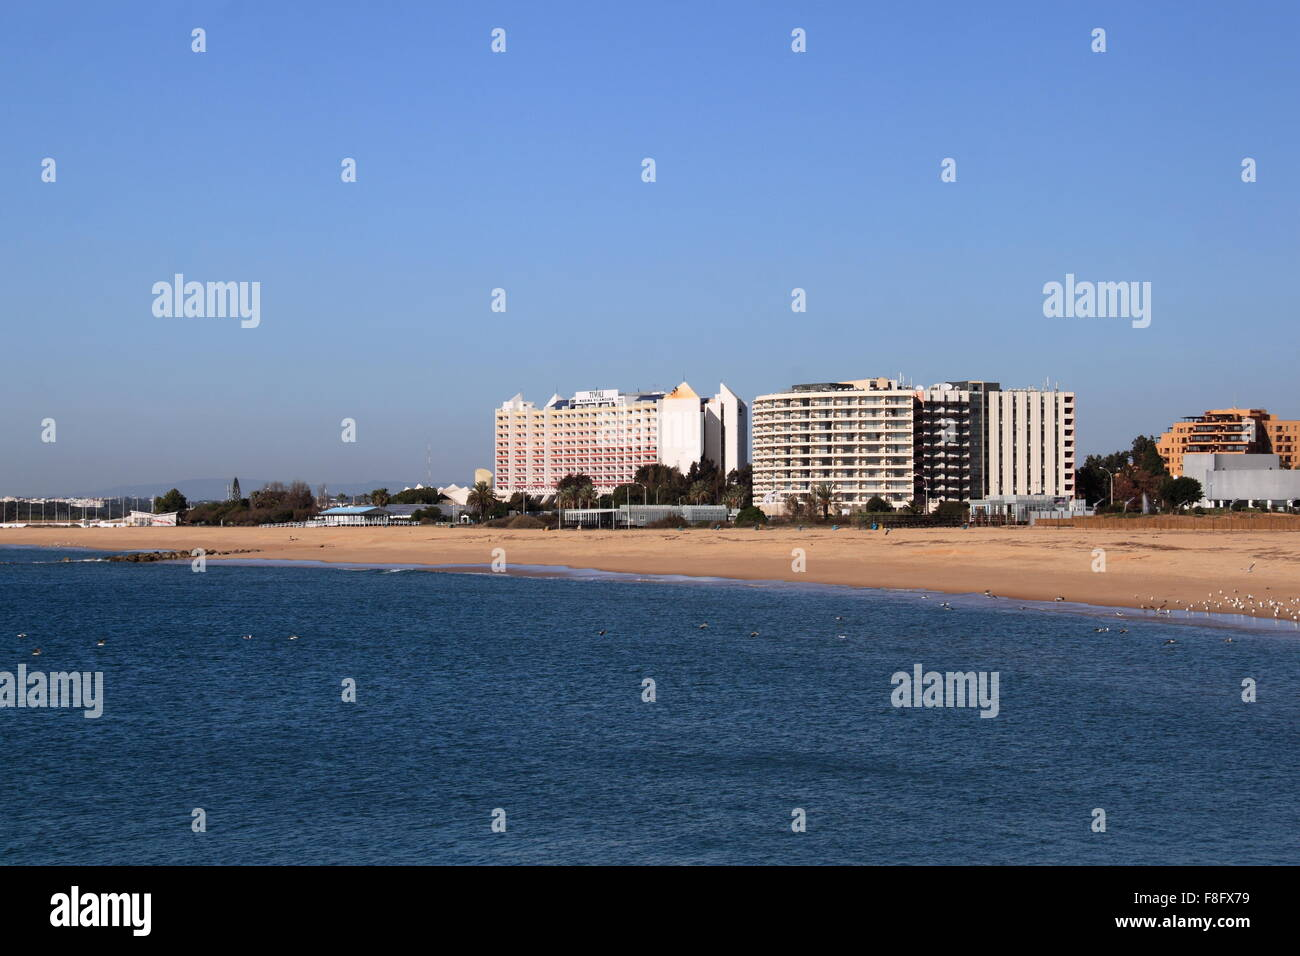 Praia da Marina and Hotel Vila Galé Ampalius, with Tivoli Marina Hotel behind, Vilamoura, Quarteira, Algarve, Portugal, Stock Photo